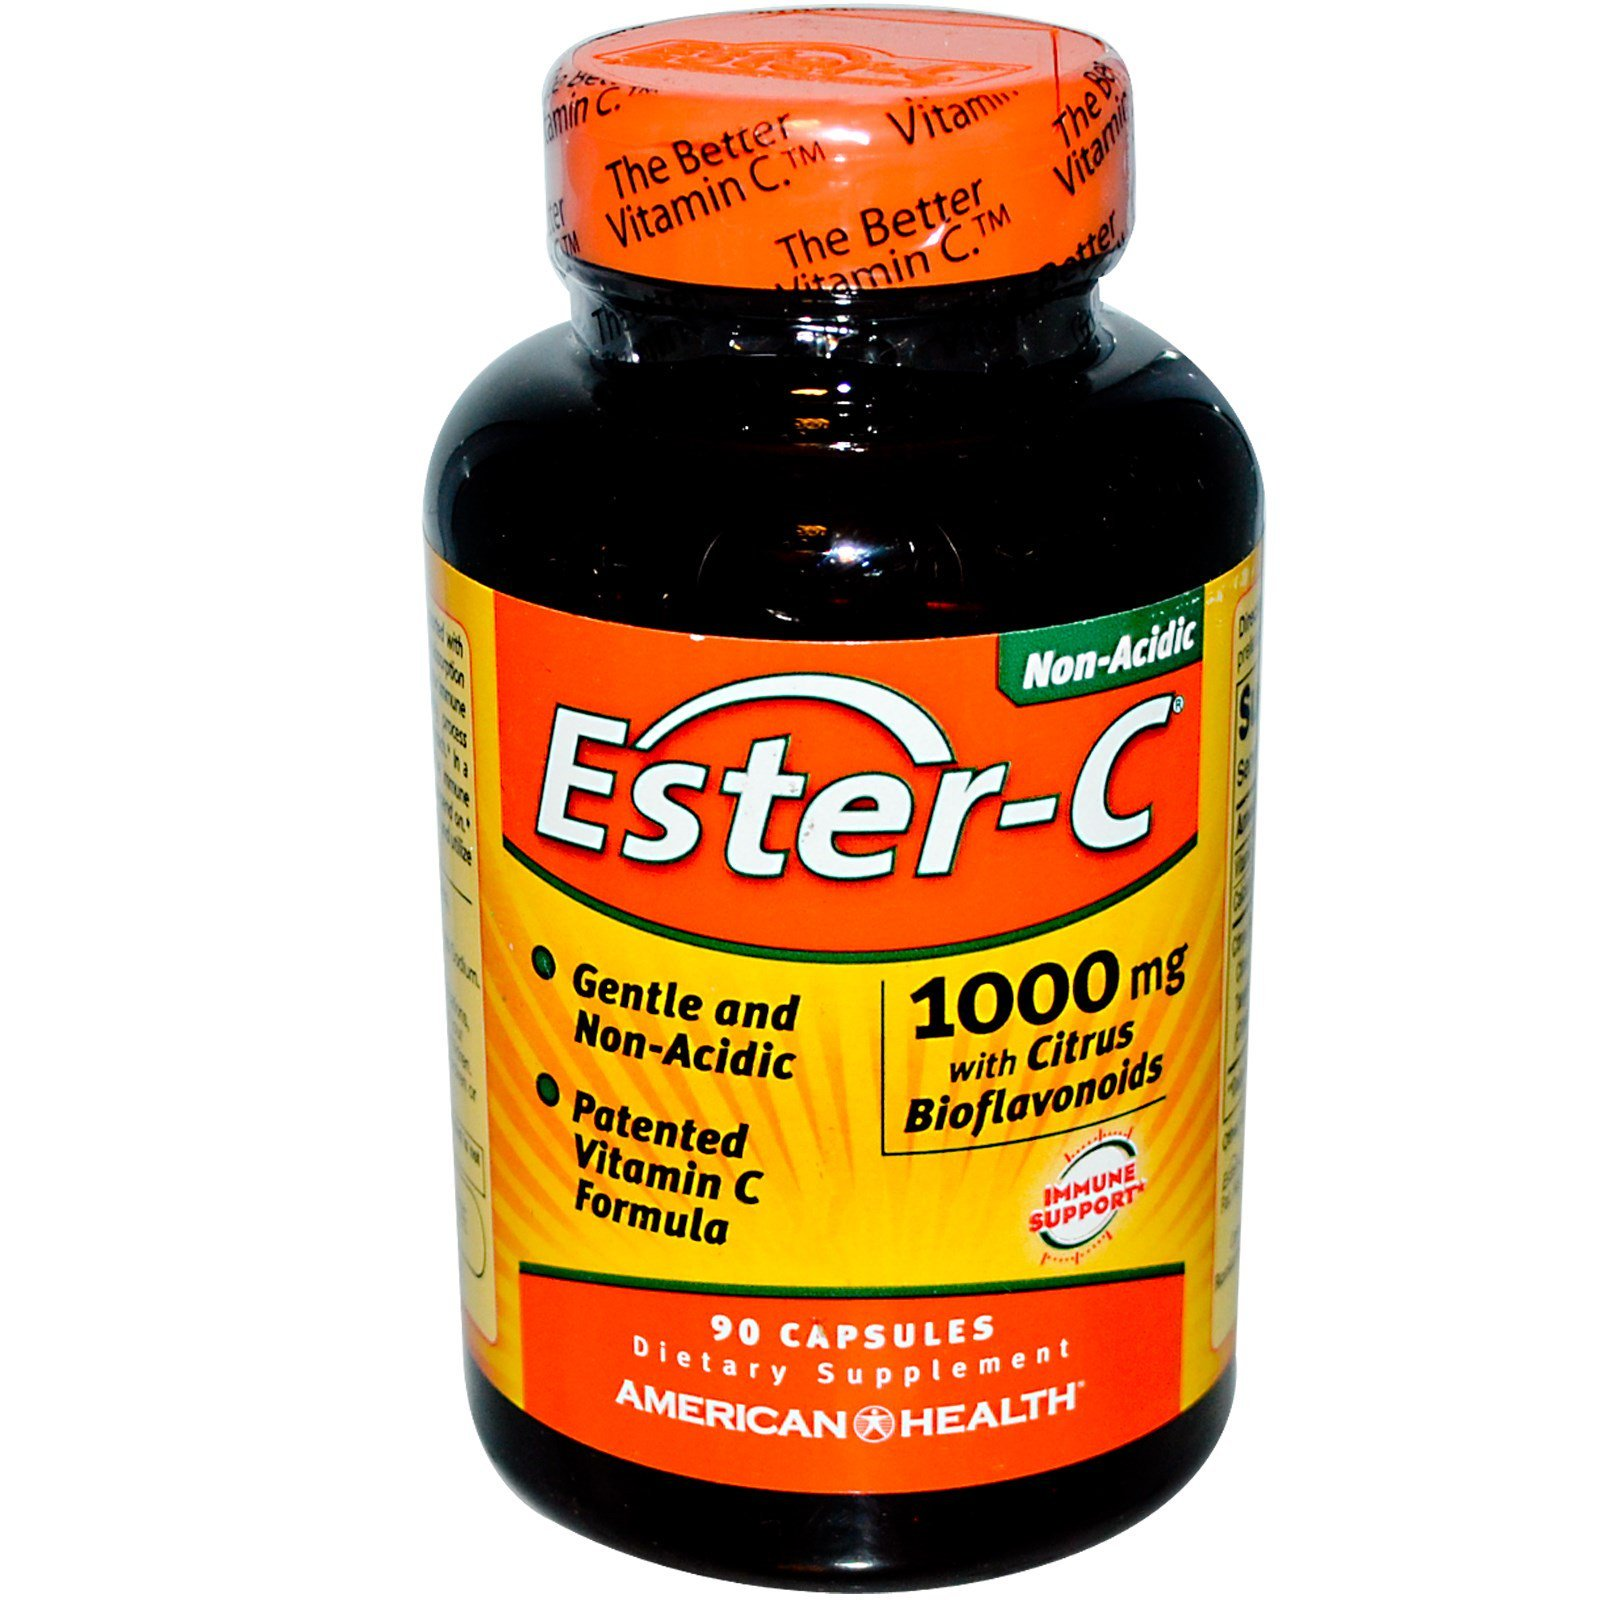 Ester-C 1000 mg with Citrus Bioflavonoids American Health Products 90 Caps (Pack of 2) by American Health